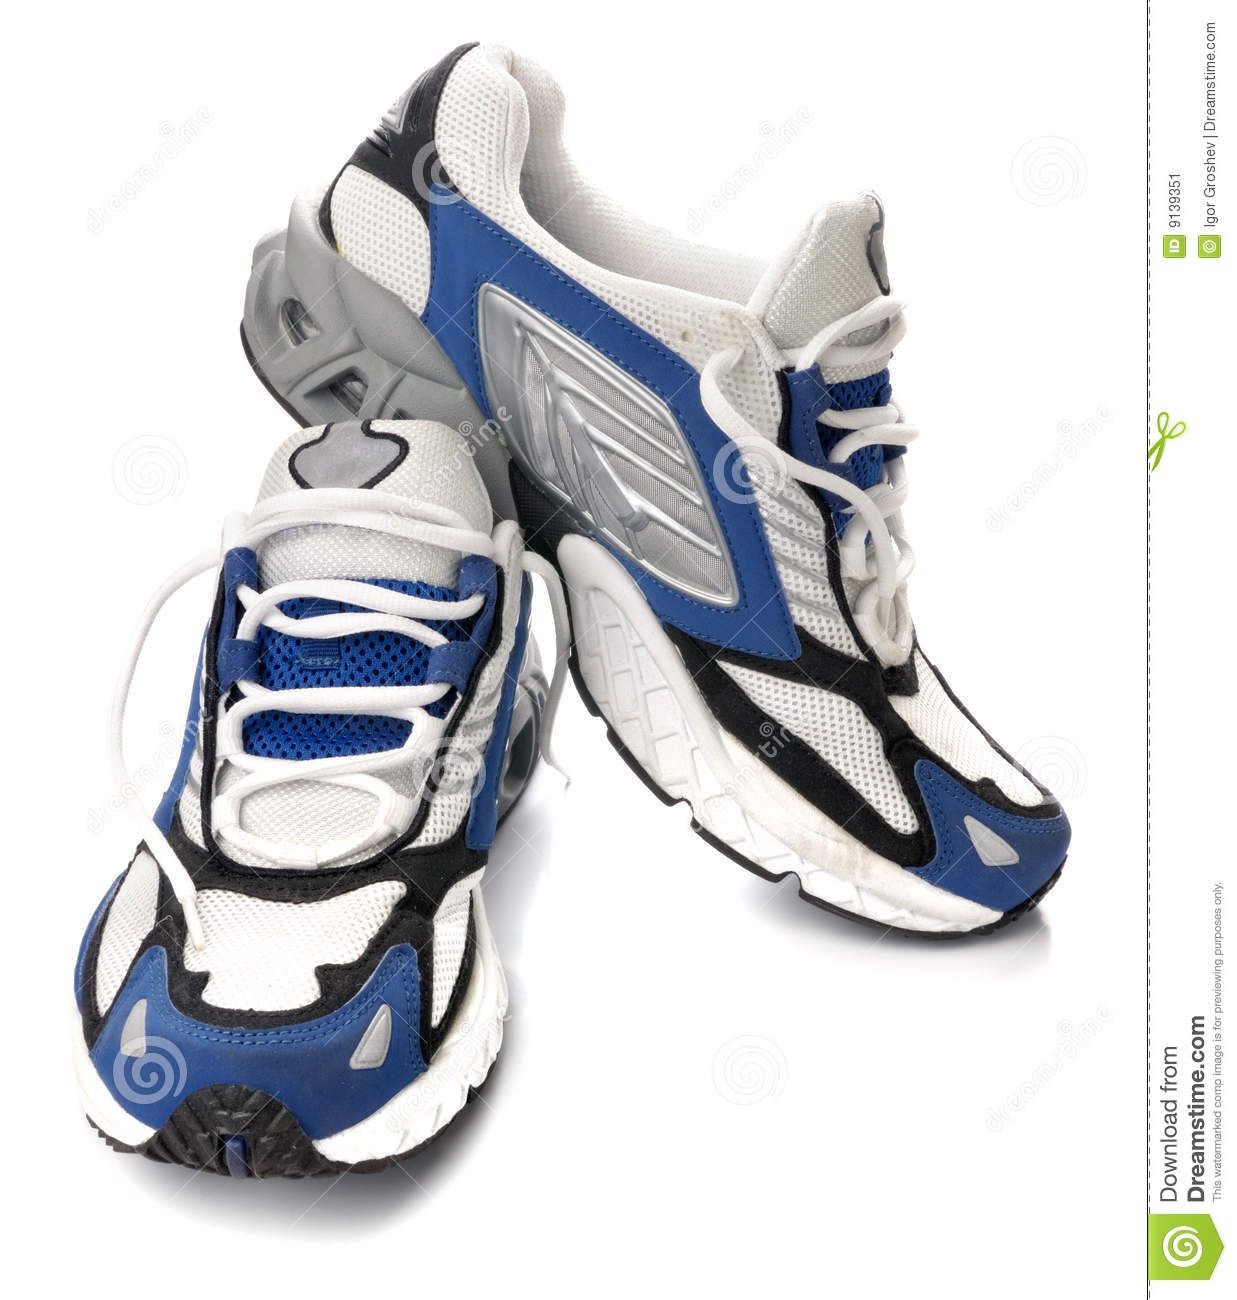 99ac3a7c2c39 Men s running shoes stock image. Image of footwear